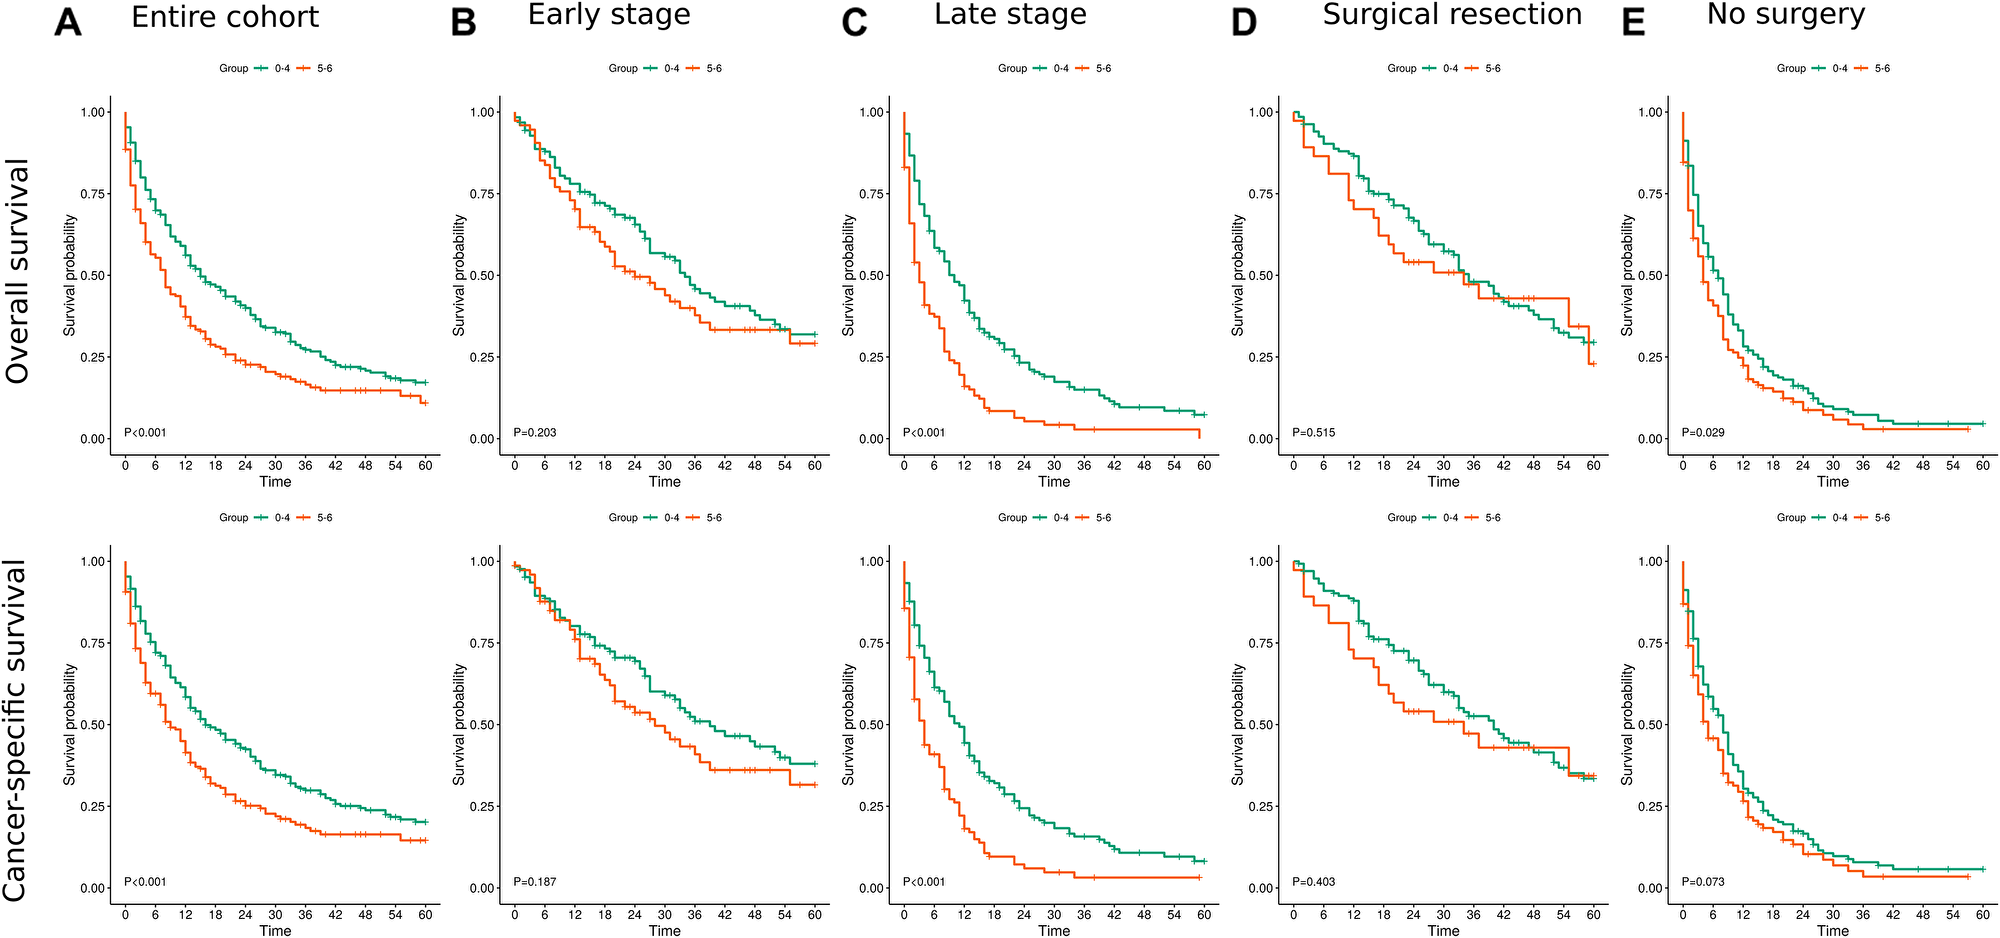 Kaplan Meier survival curves for overall and cancer specific survival.